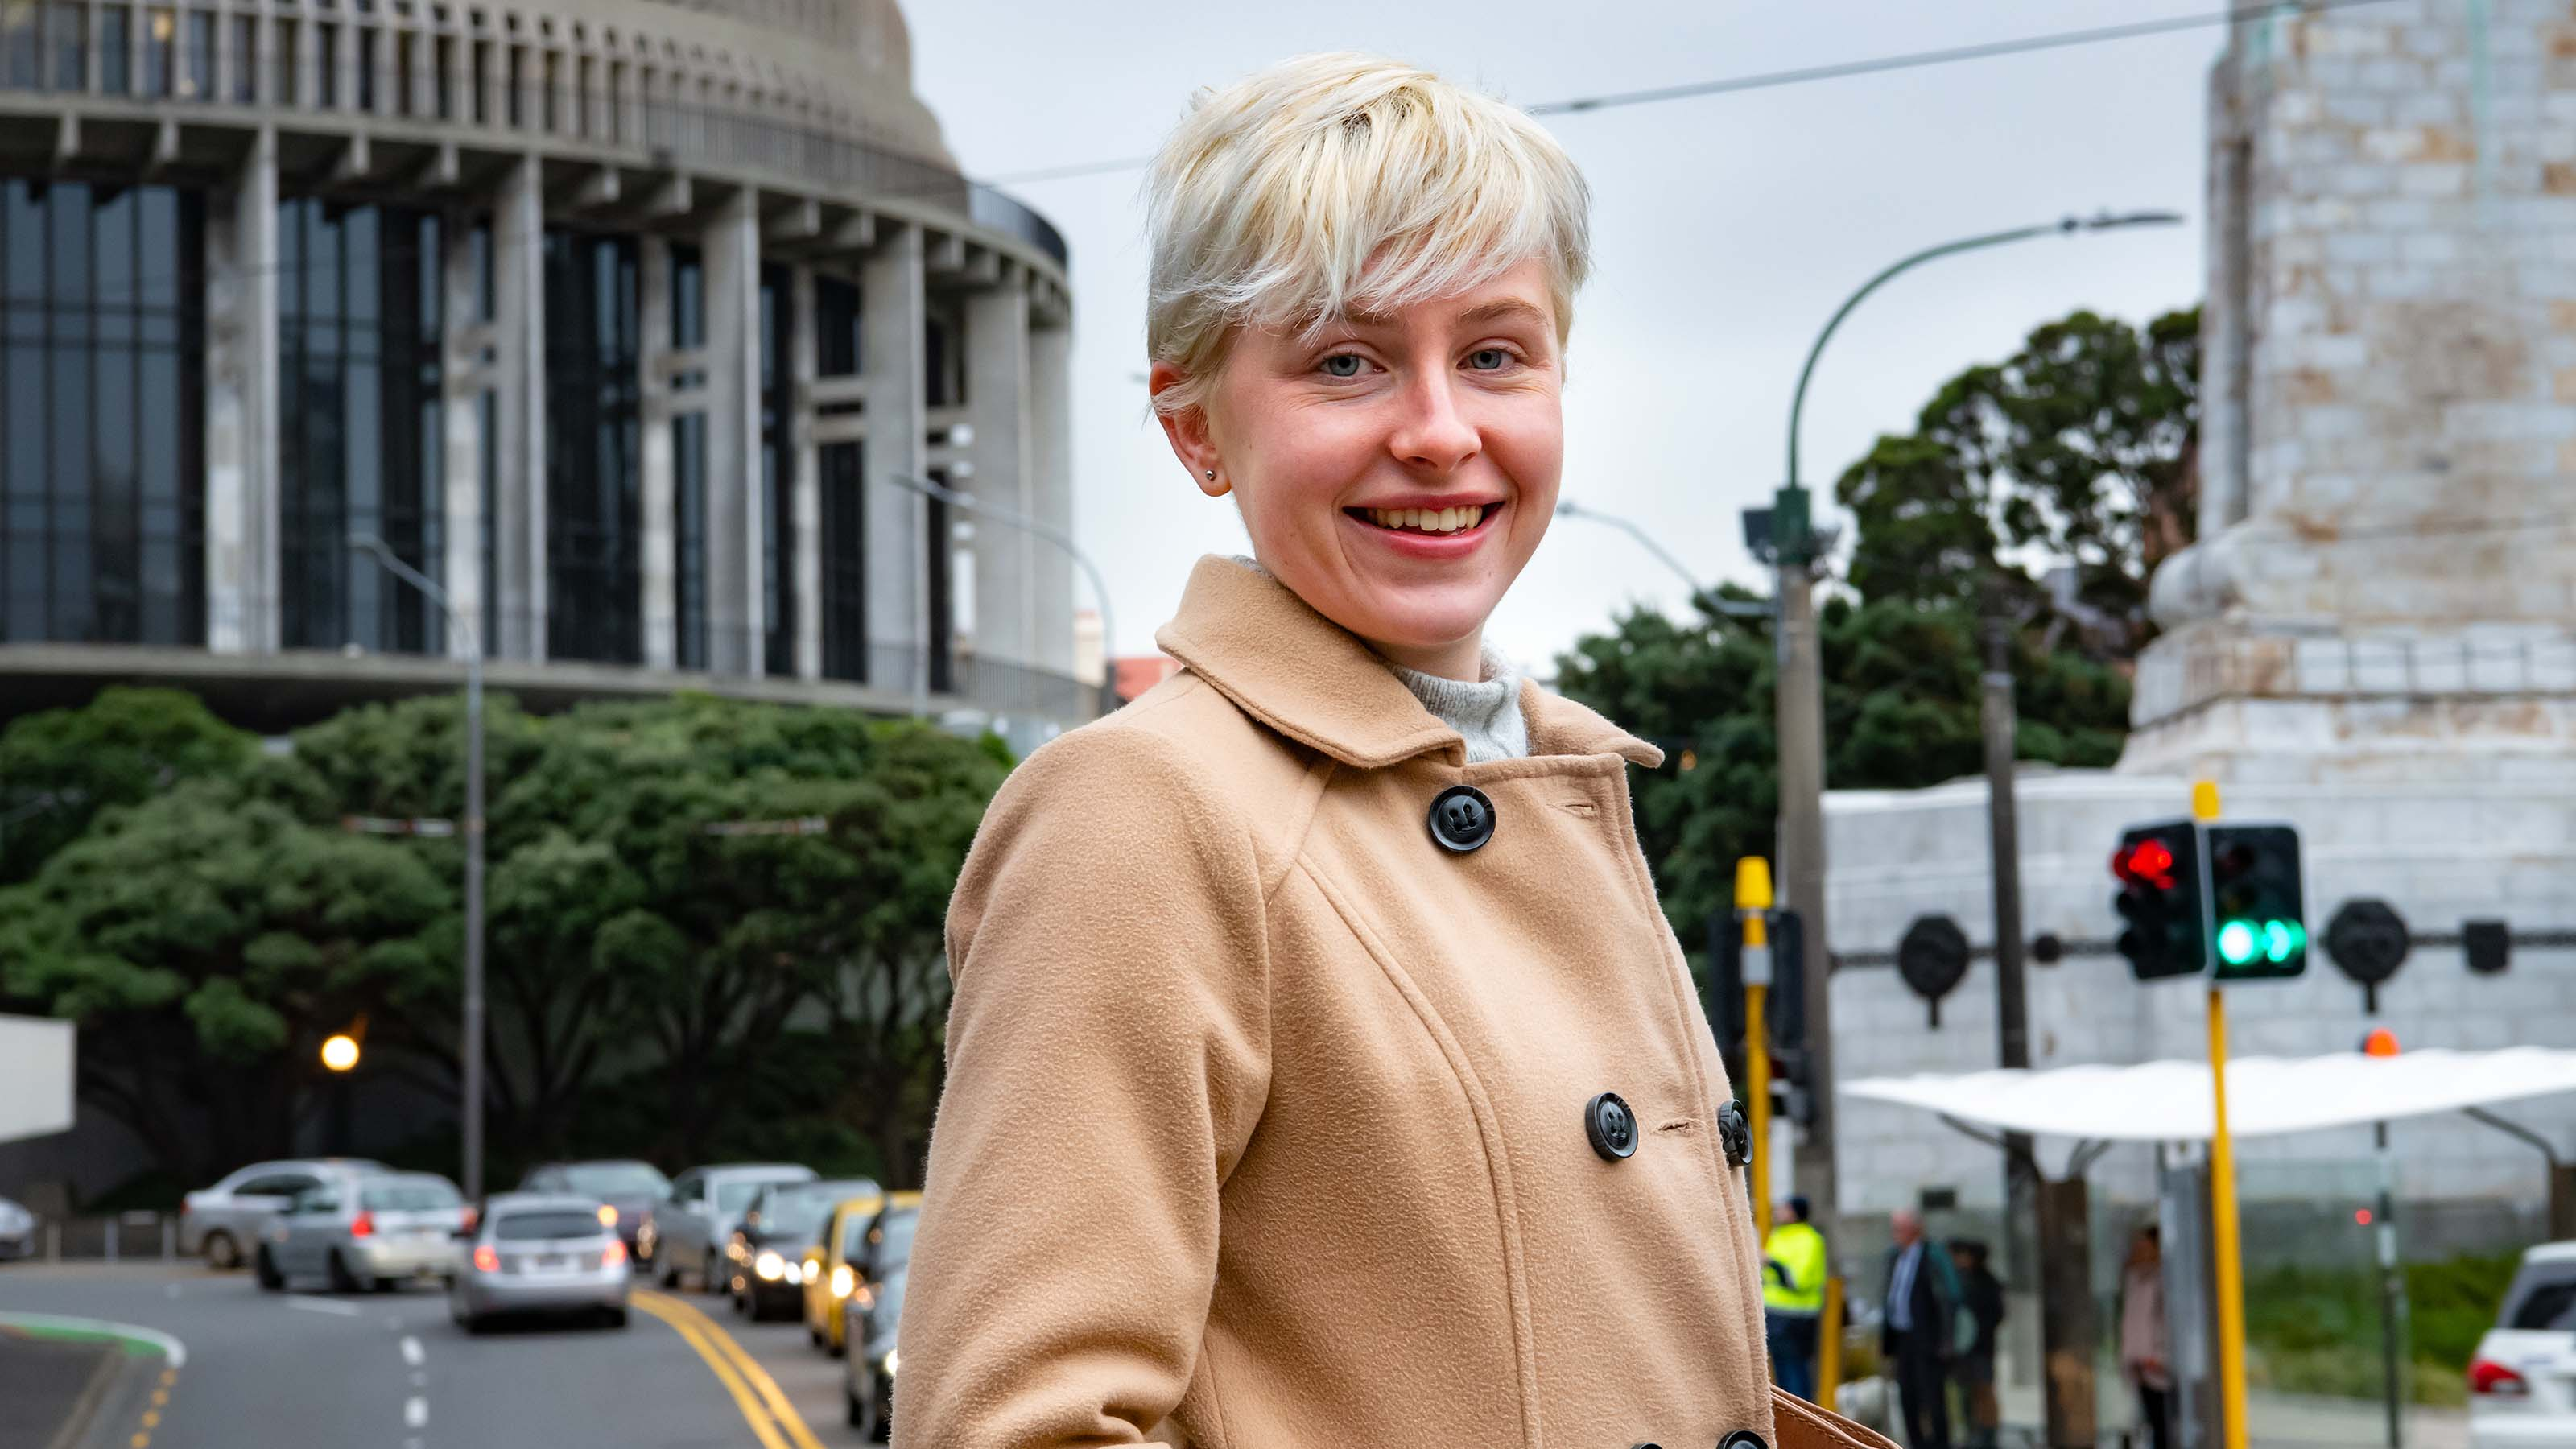 Student smiles while looking at the camera outside of the Beehive, one of New Zealand's parliamentary buildings.